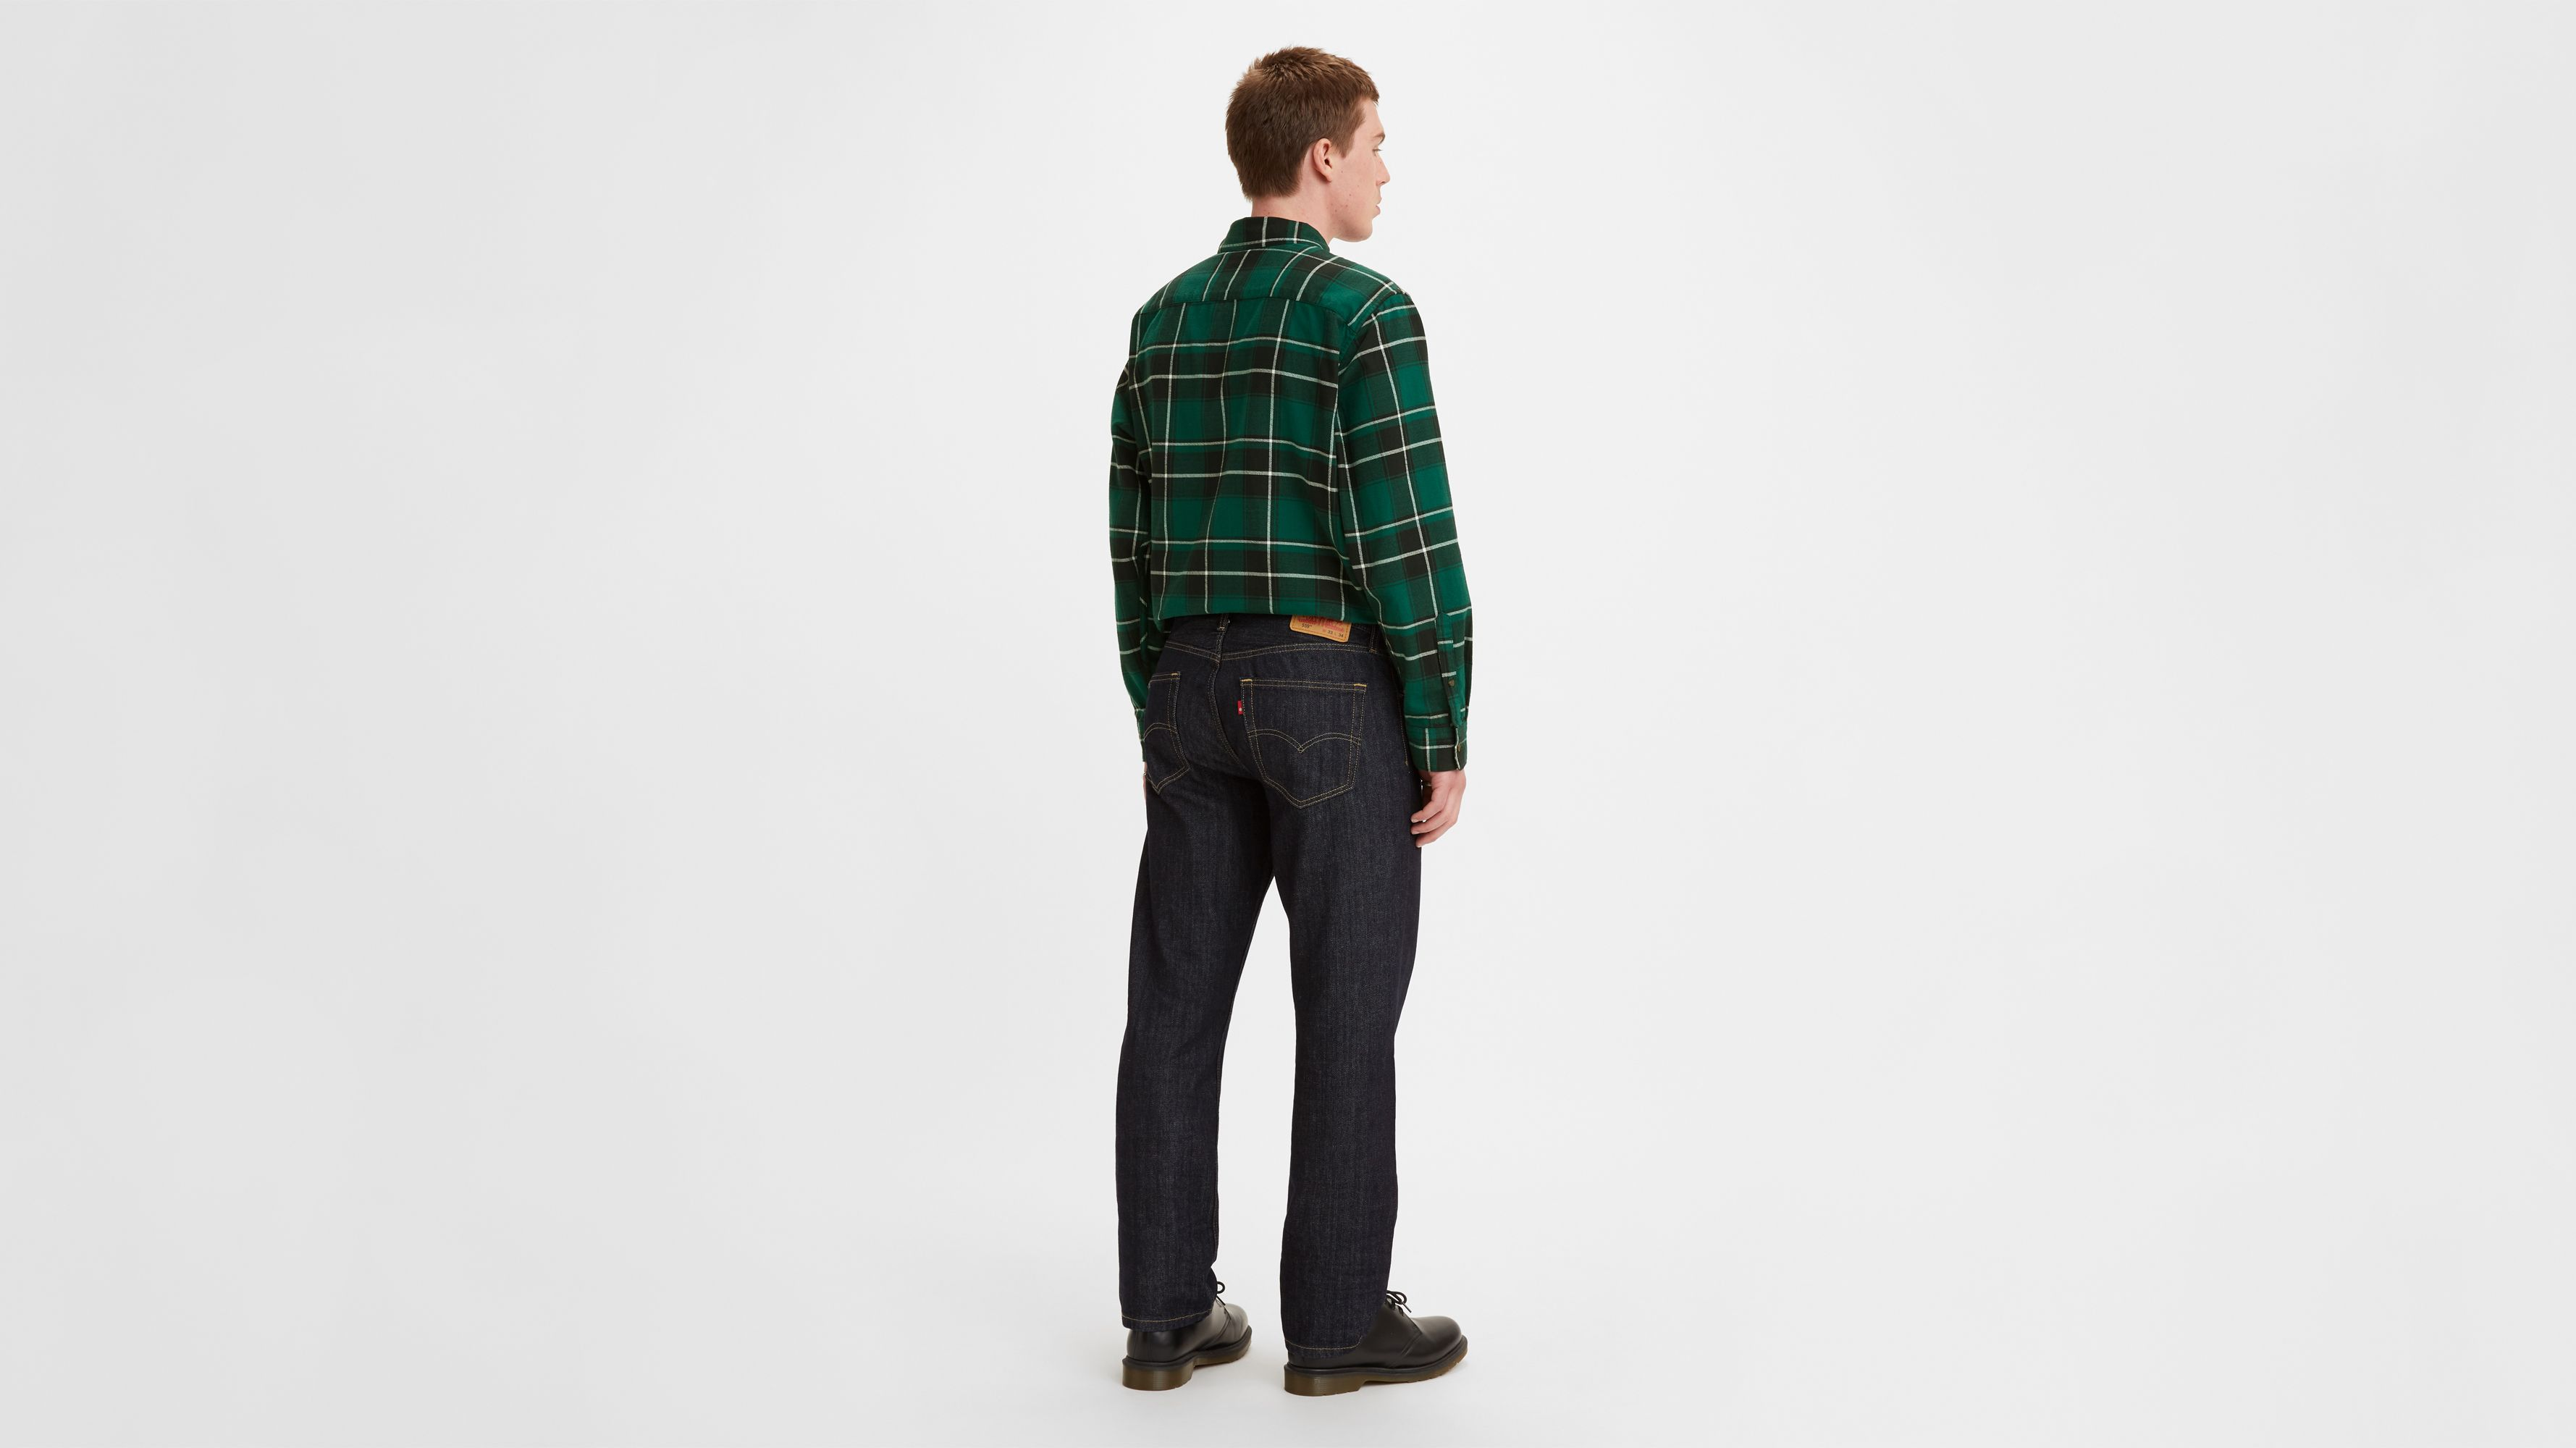 7a919d60c7fd2c 559™ Relaxed Straight Men's Jeans - Dark Wash | Levi's® US